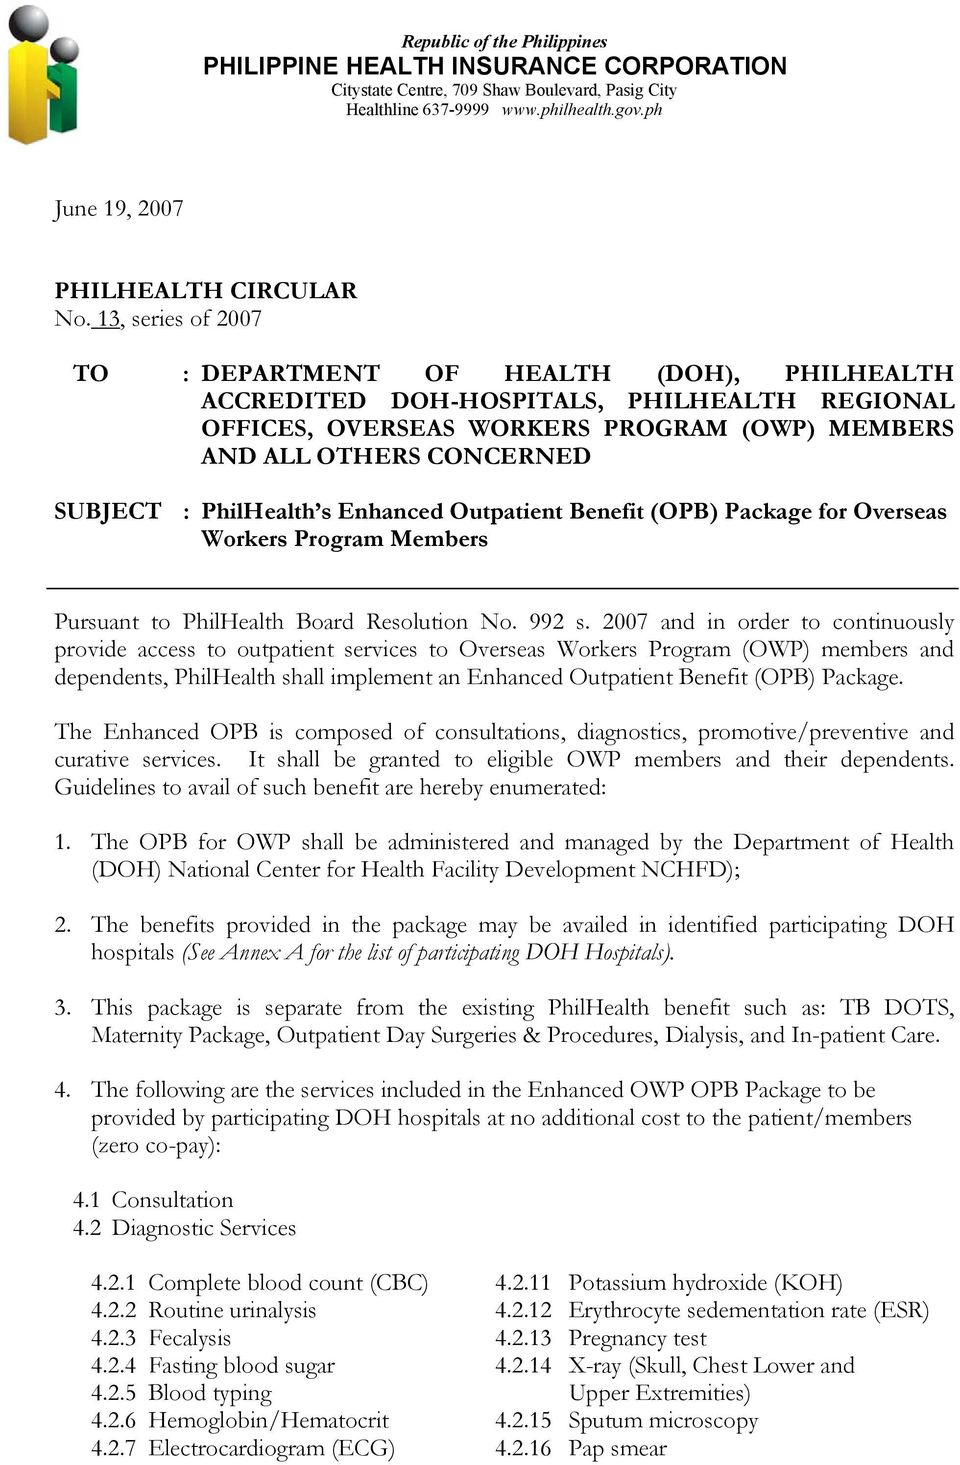 PhilHealth s Enhanced Outpatient Benefit (OPB) Package for Overseas Workers Program Members Pursuant to PhilHealth Board Resolution No. 992 s.